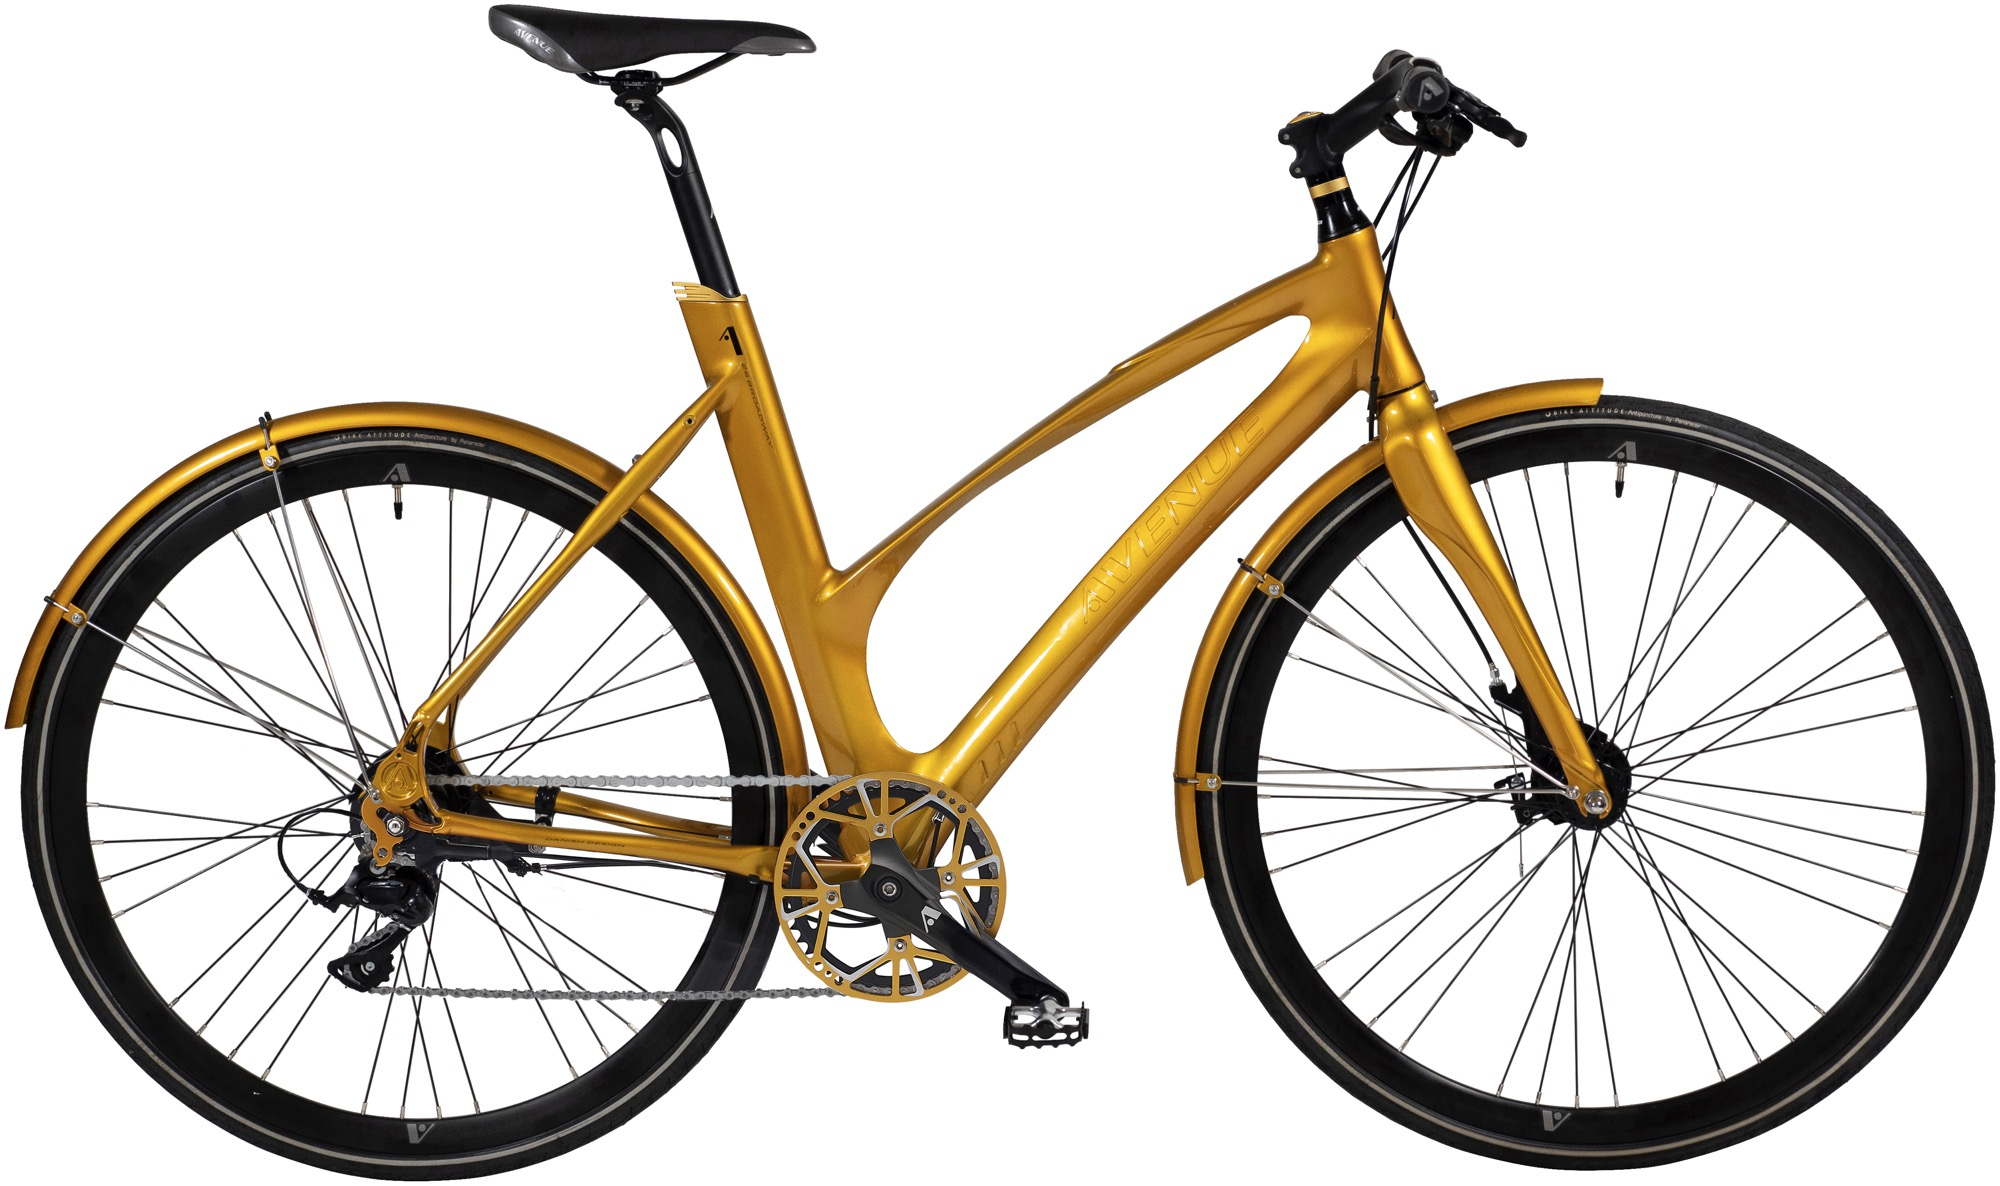 Image of   Avenue 25 Airbase Lady. 10 speed Tiagra Hydr. Disc. Shiny gold